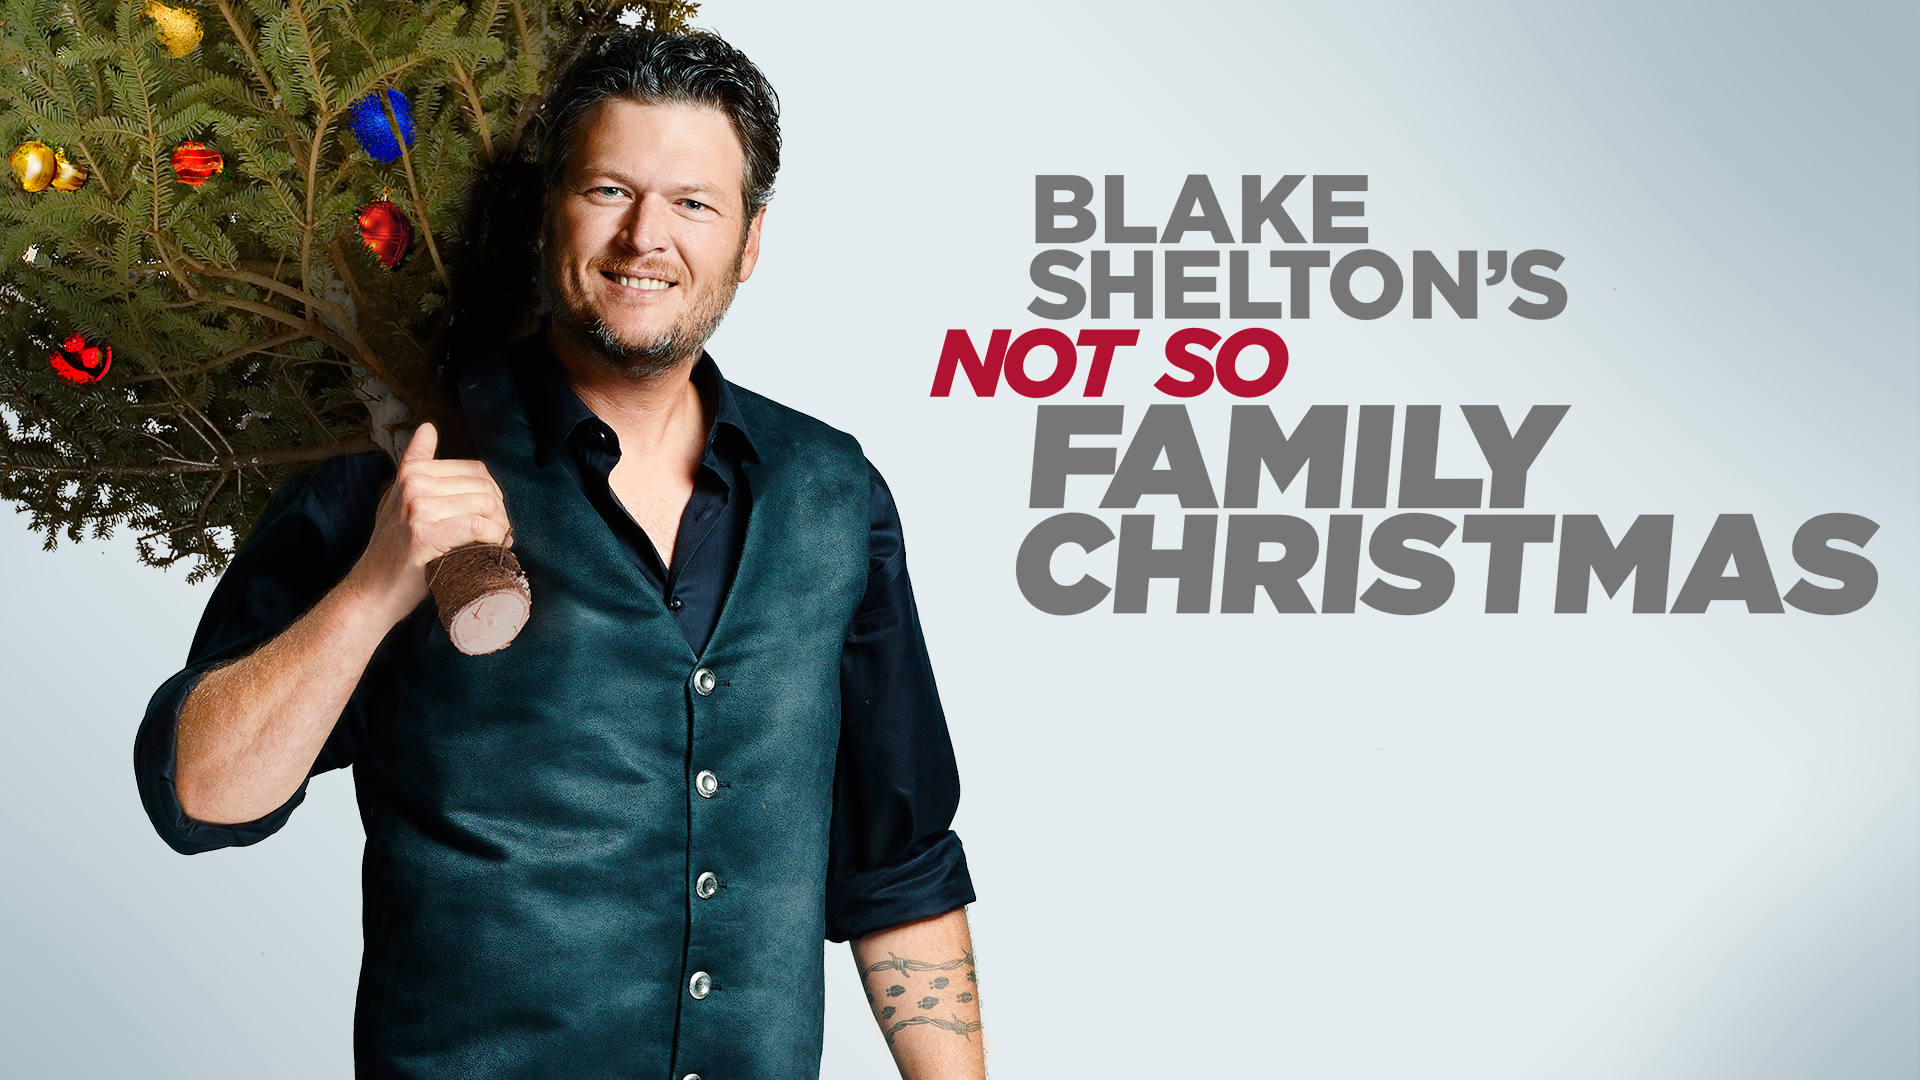 Blake Shelton S Not So Family Christmas Nbc Com Make Your Own Beautiful  HD Wallpapers, Images Over 1000+ [ralydesign.ml]